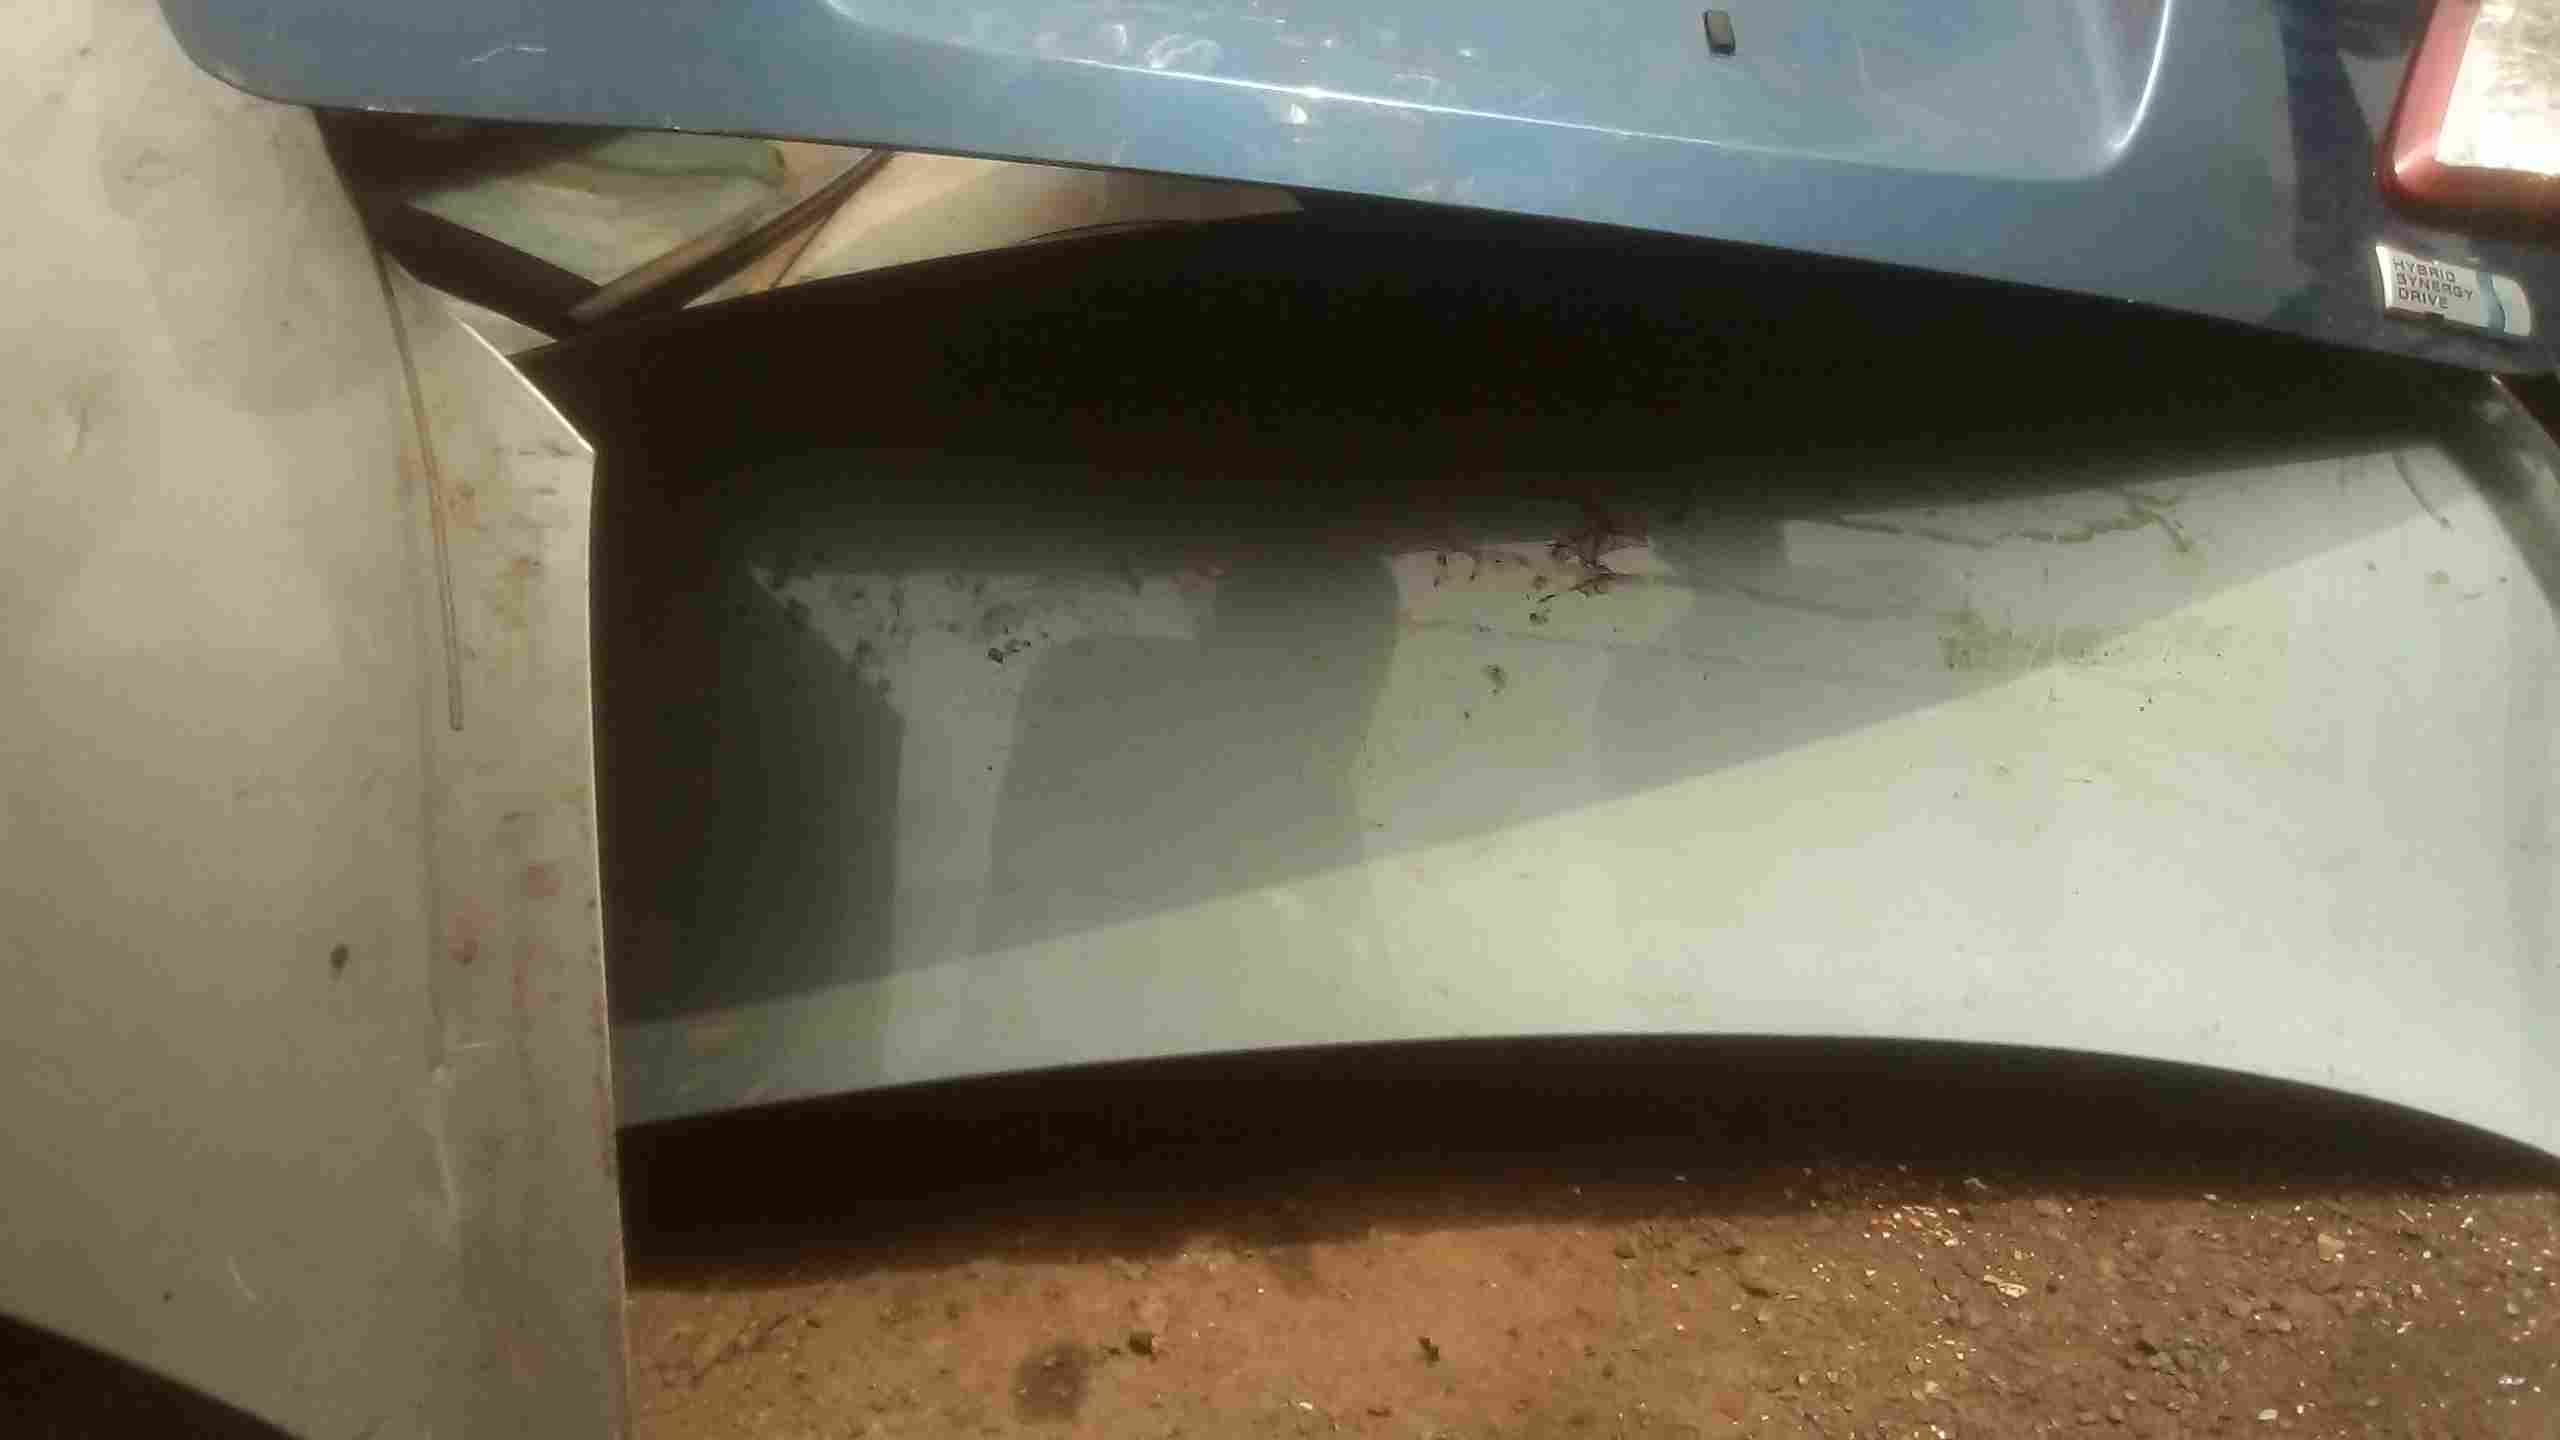 FAIRLY USED CAMRY BONNET